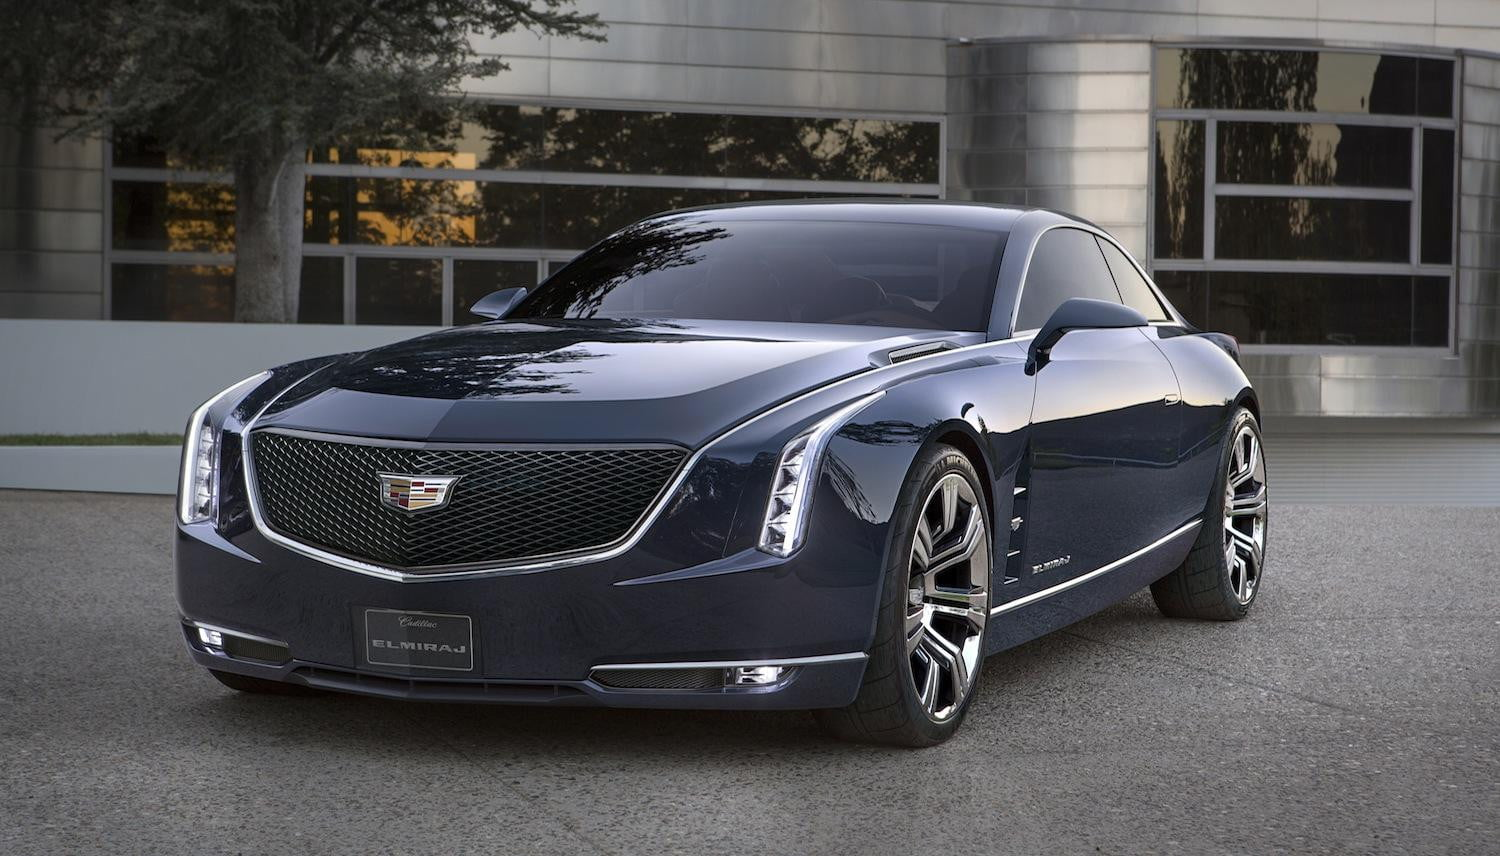 Now thats what a Cadillac should look like.